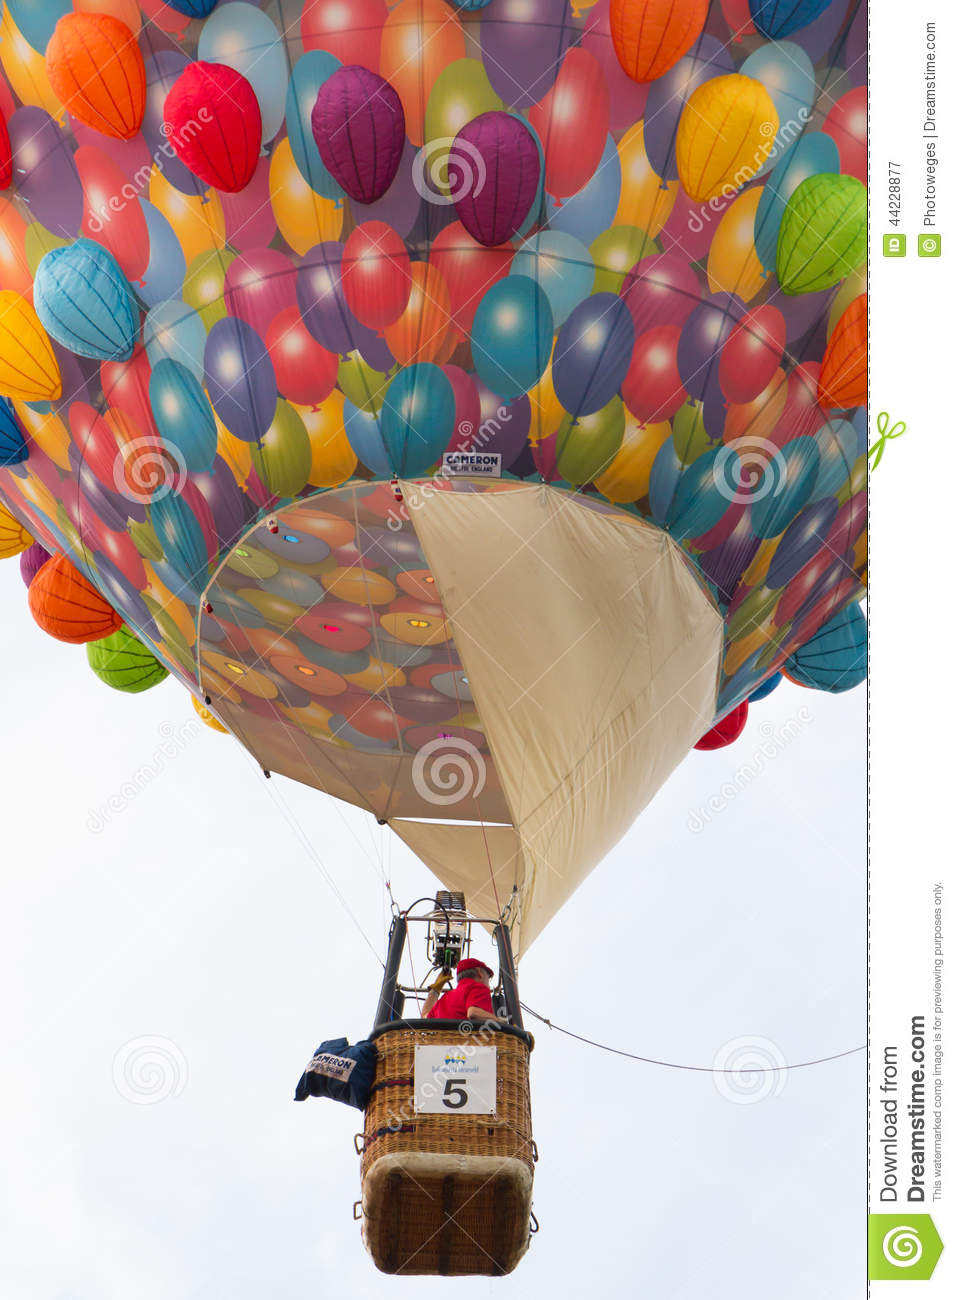 BARNEVELD, THE NETHERLANDS - AUGUST 28: Colorful air balloons ta